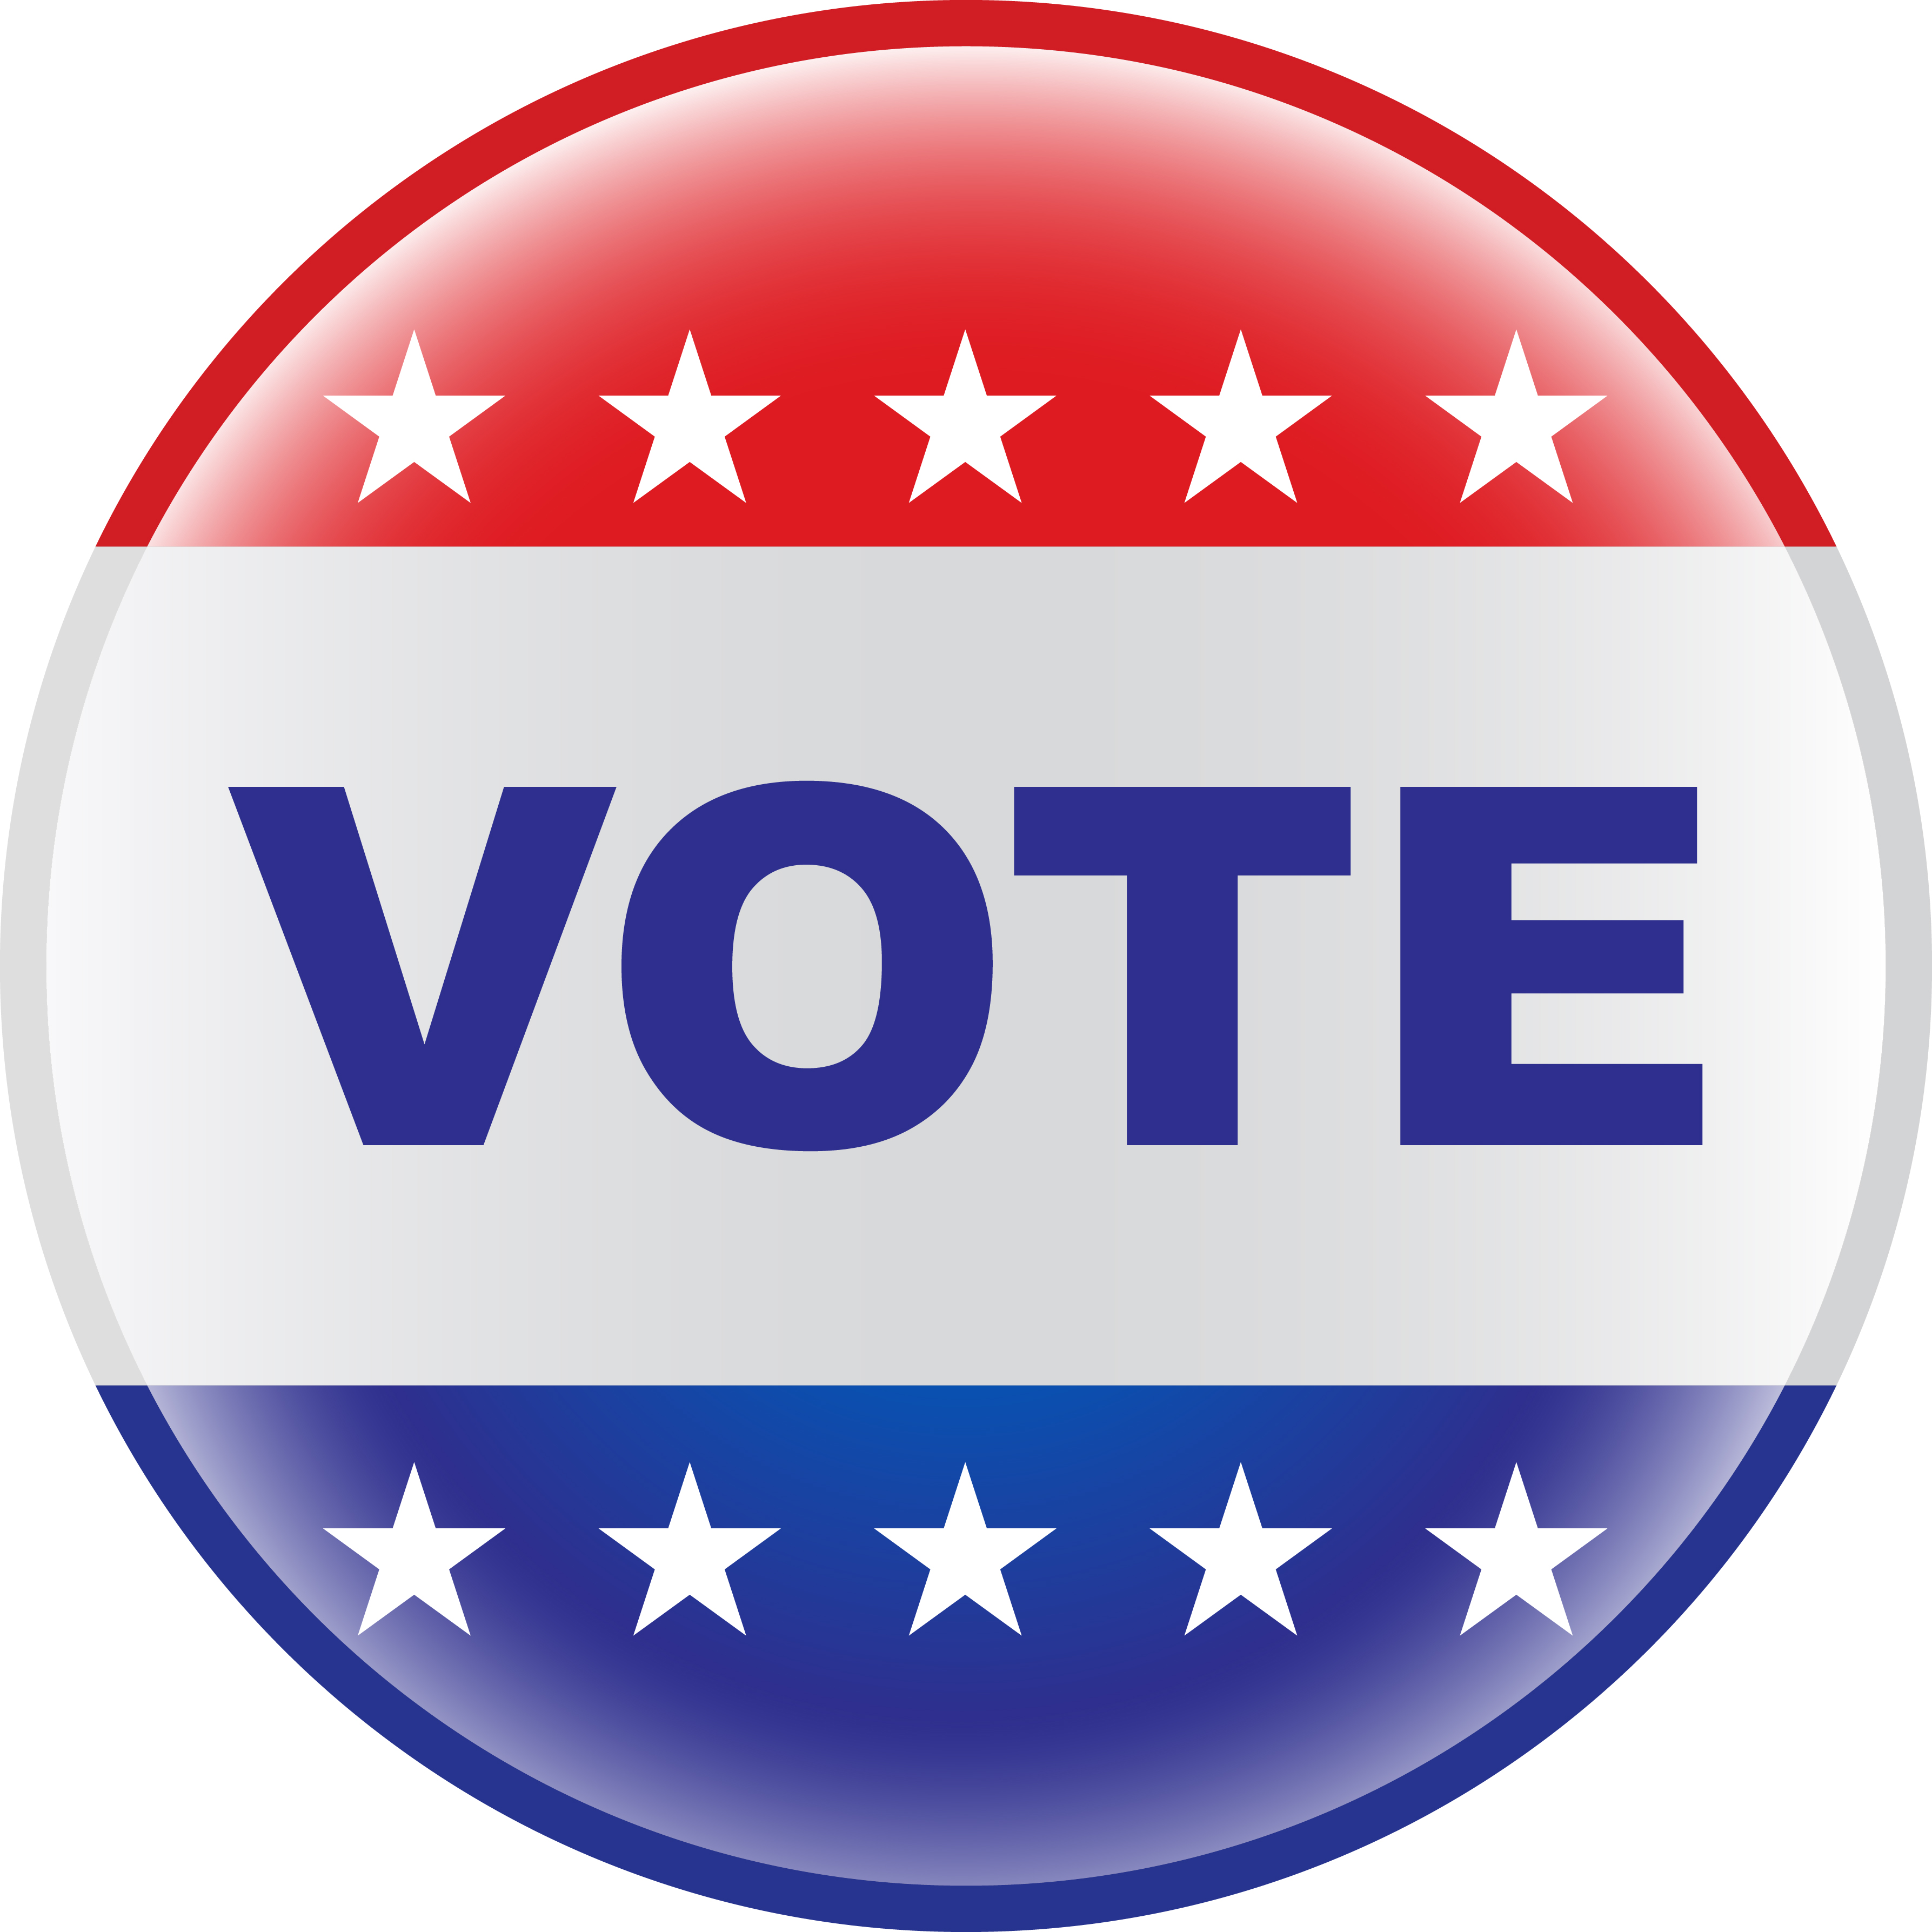 Free download best on. Voting clipart secretary state